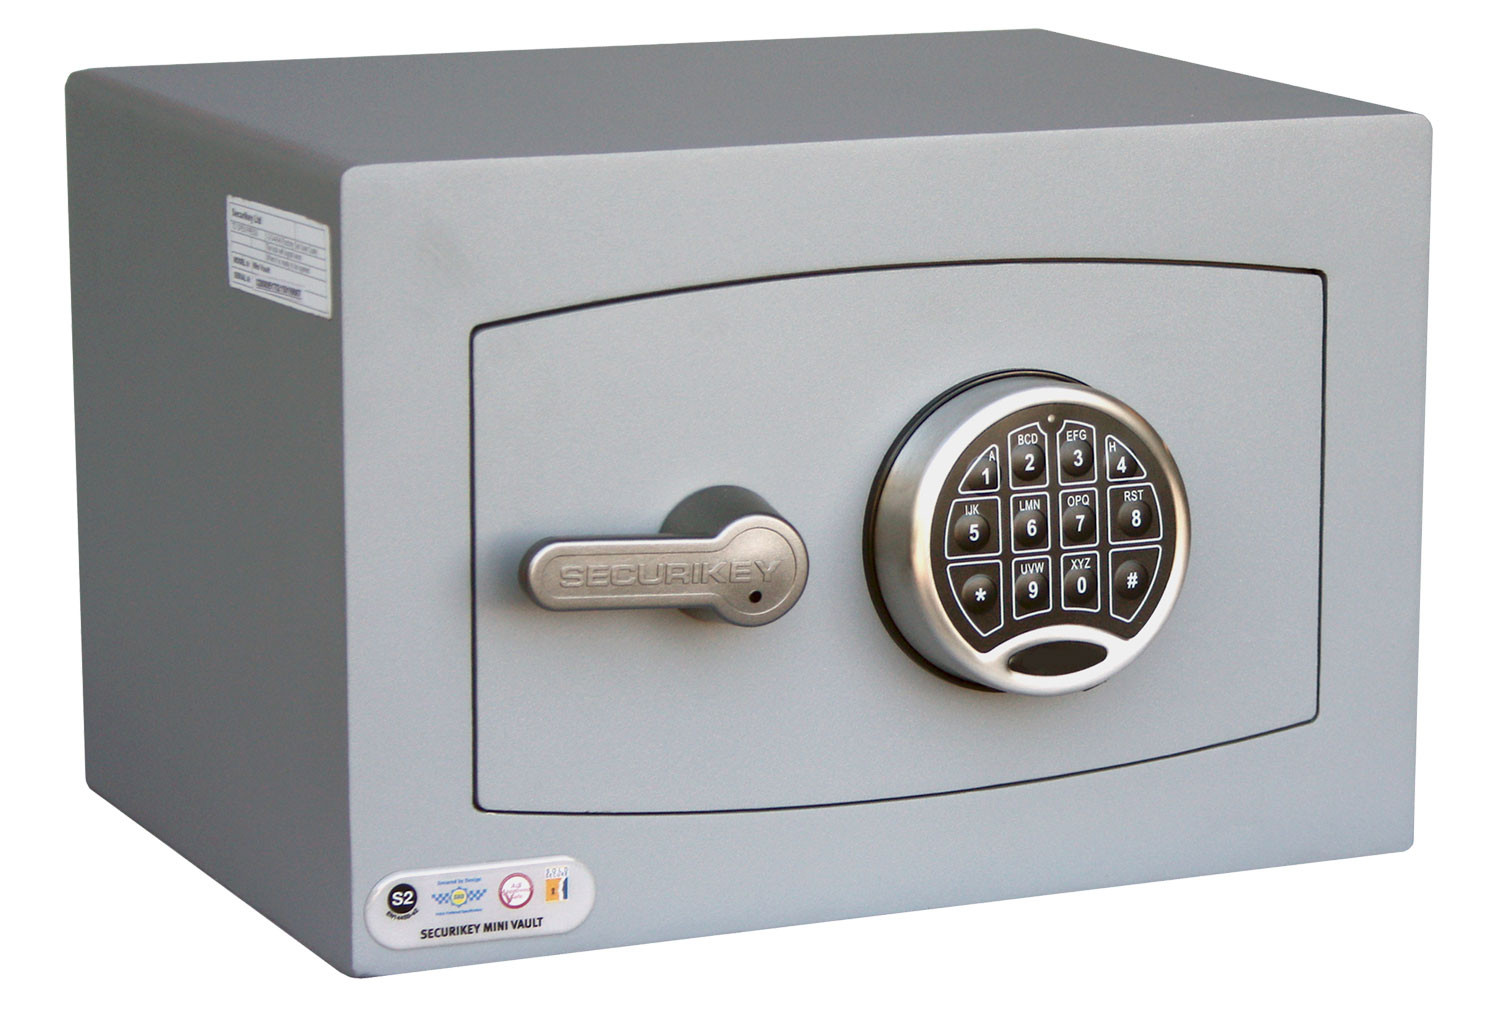 Securikey Mini Vault Silver Cash Safe Size 0 With Electronic Lock (18ltrs)